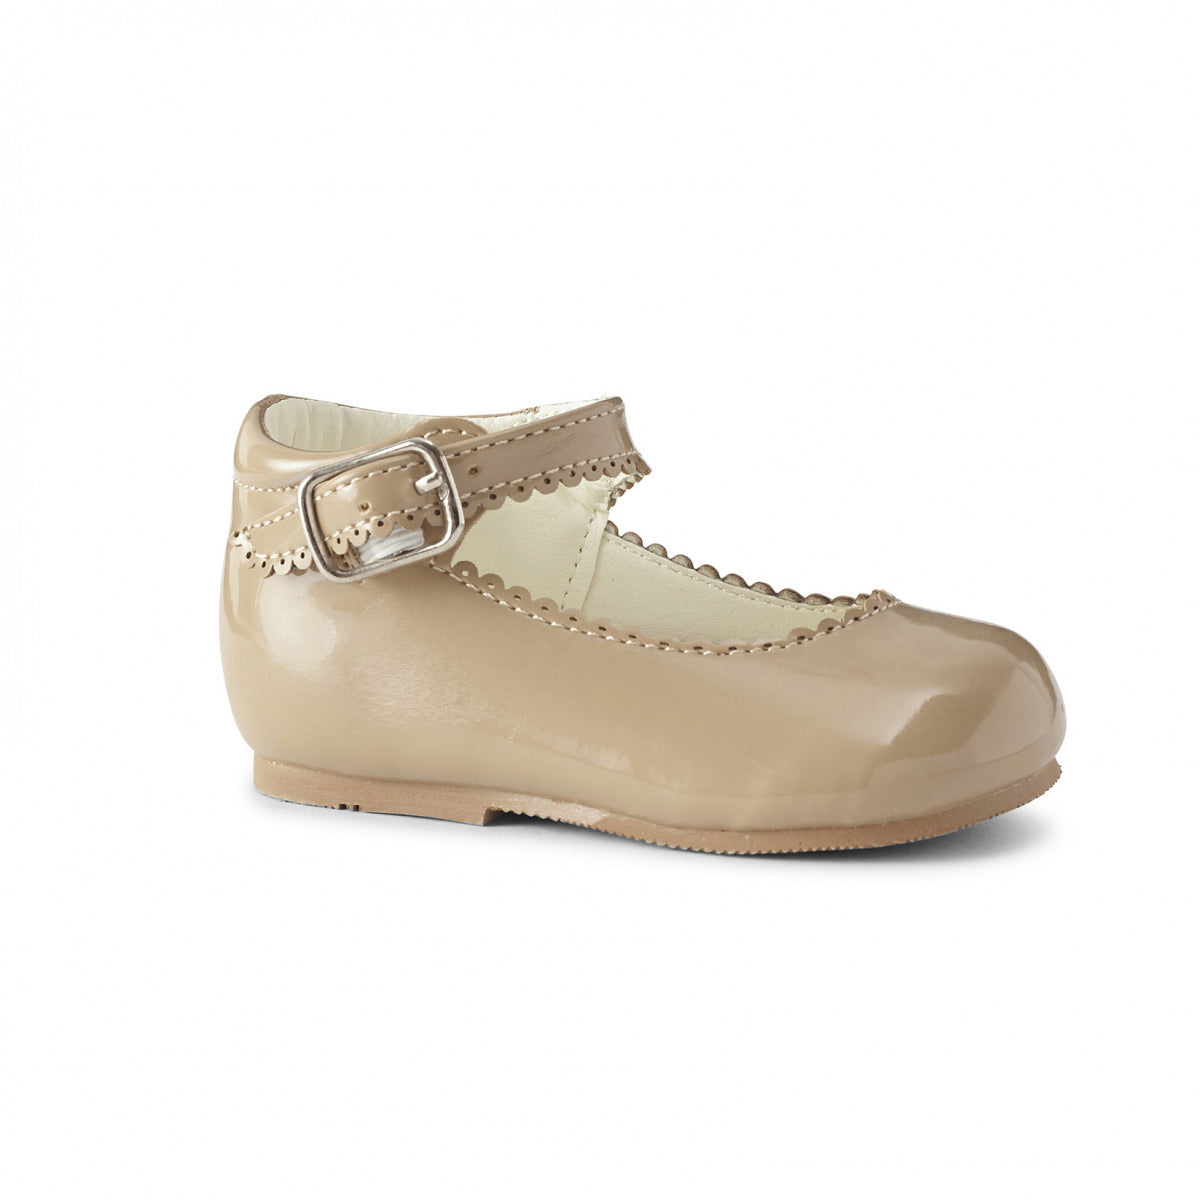 Camila Camel Hard Sole Shoe